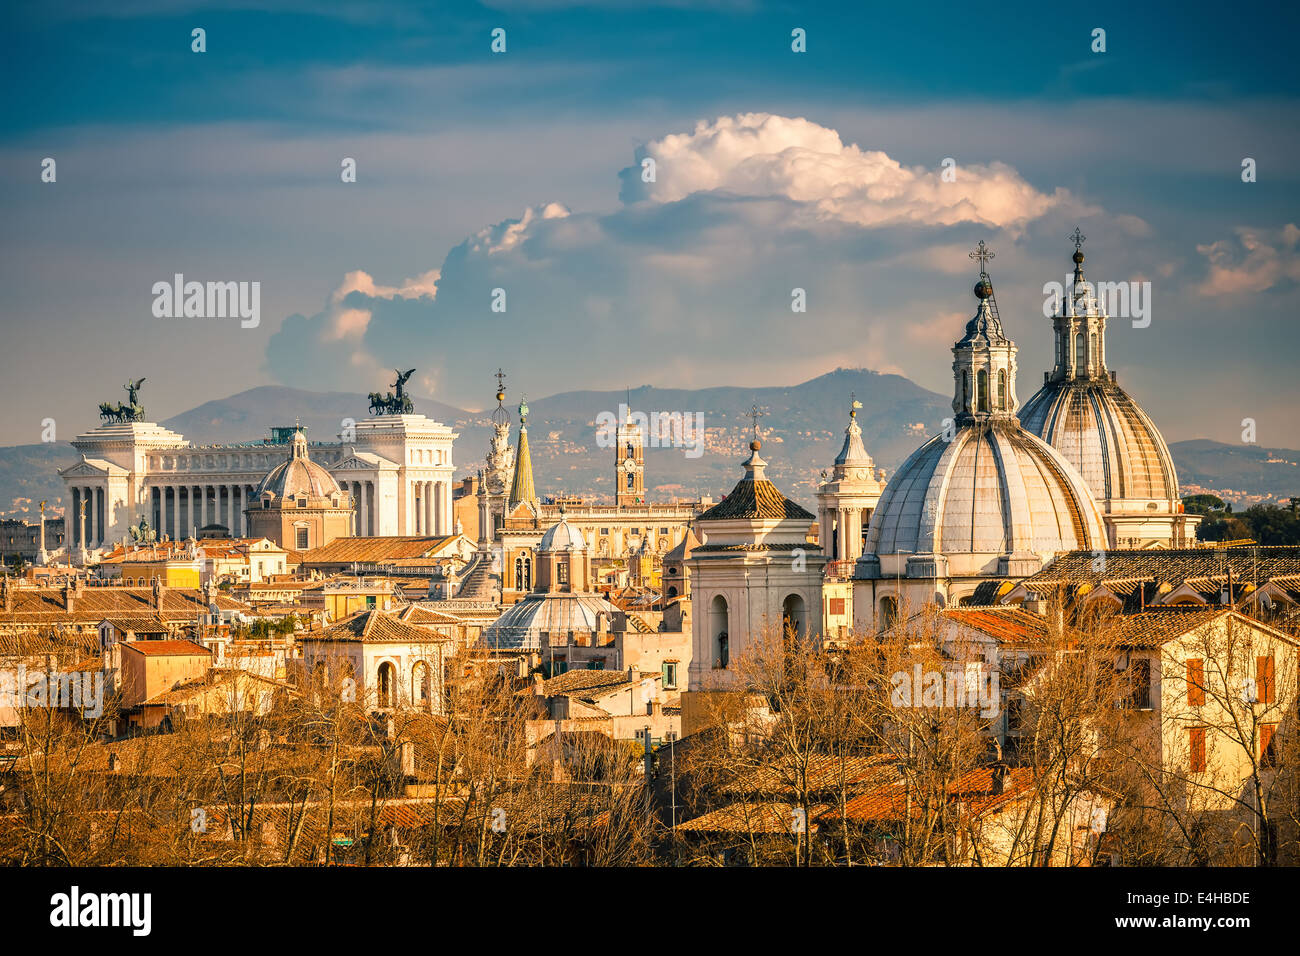 Aerial view of Rome - Stock Image